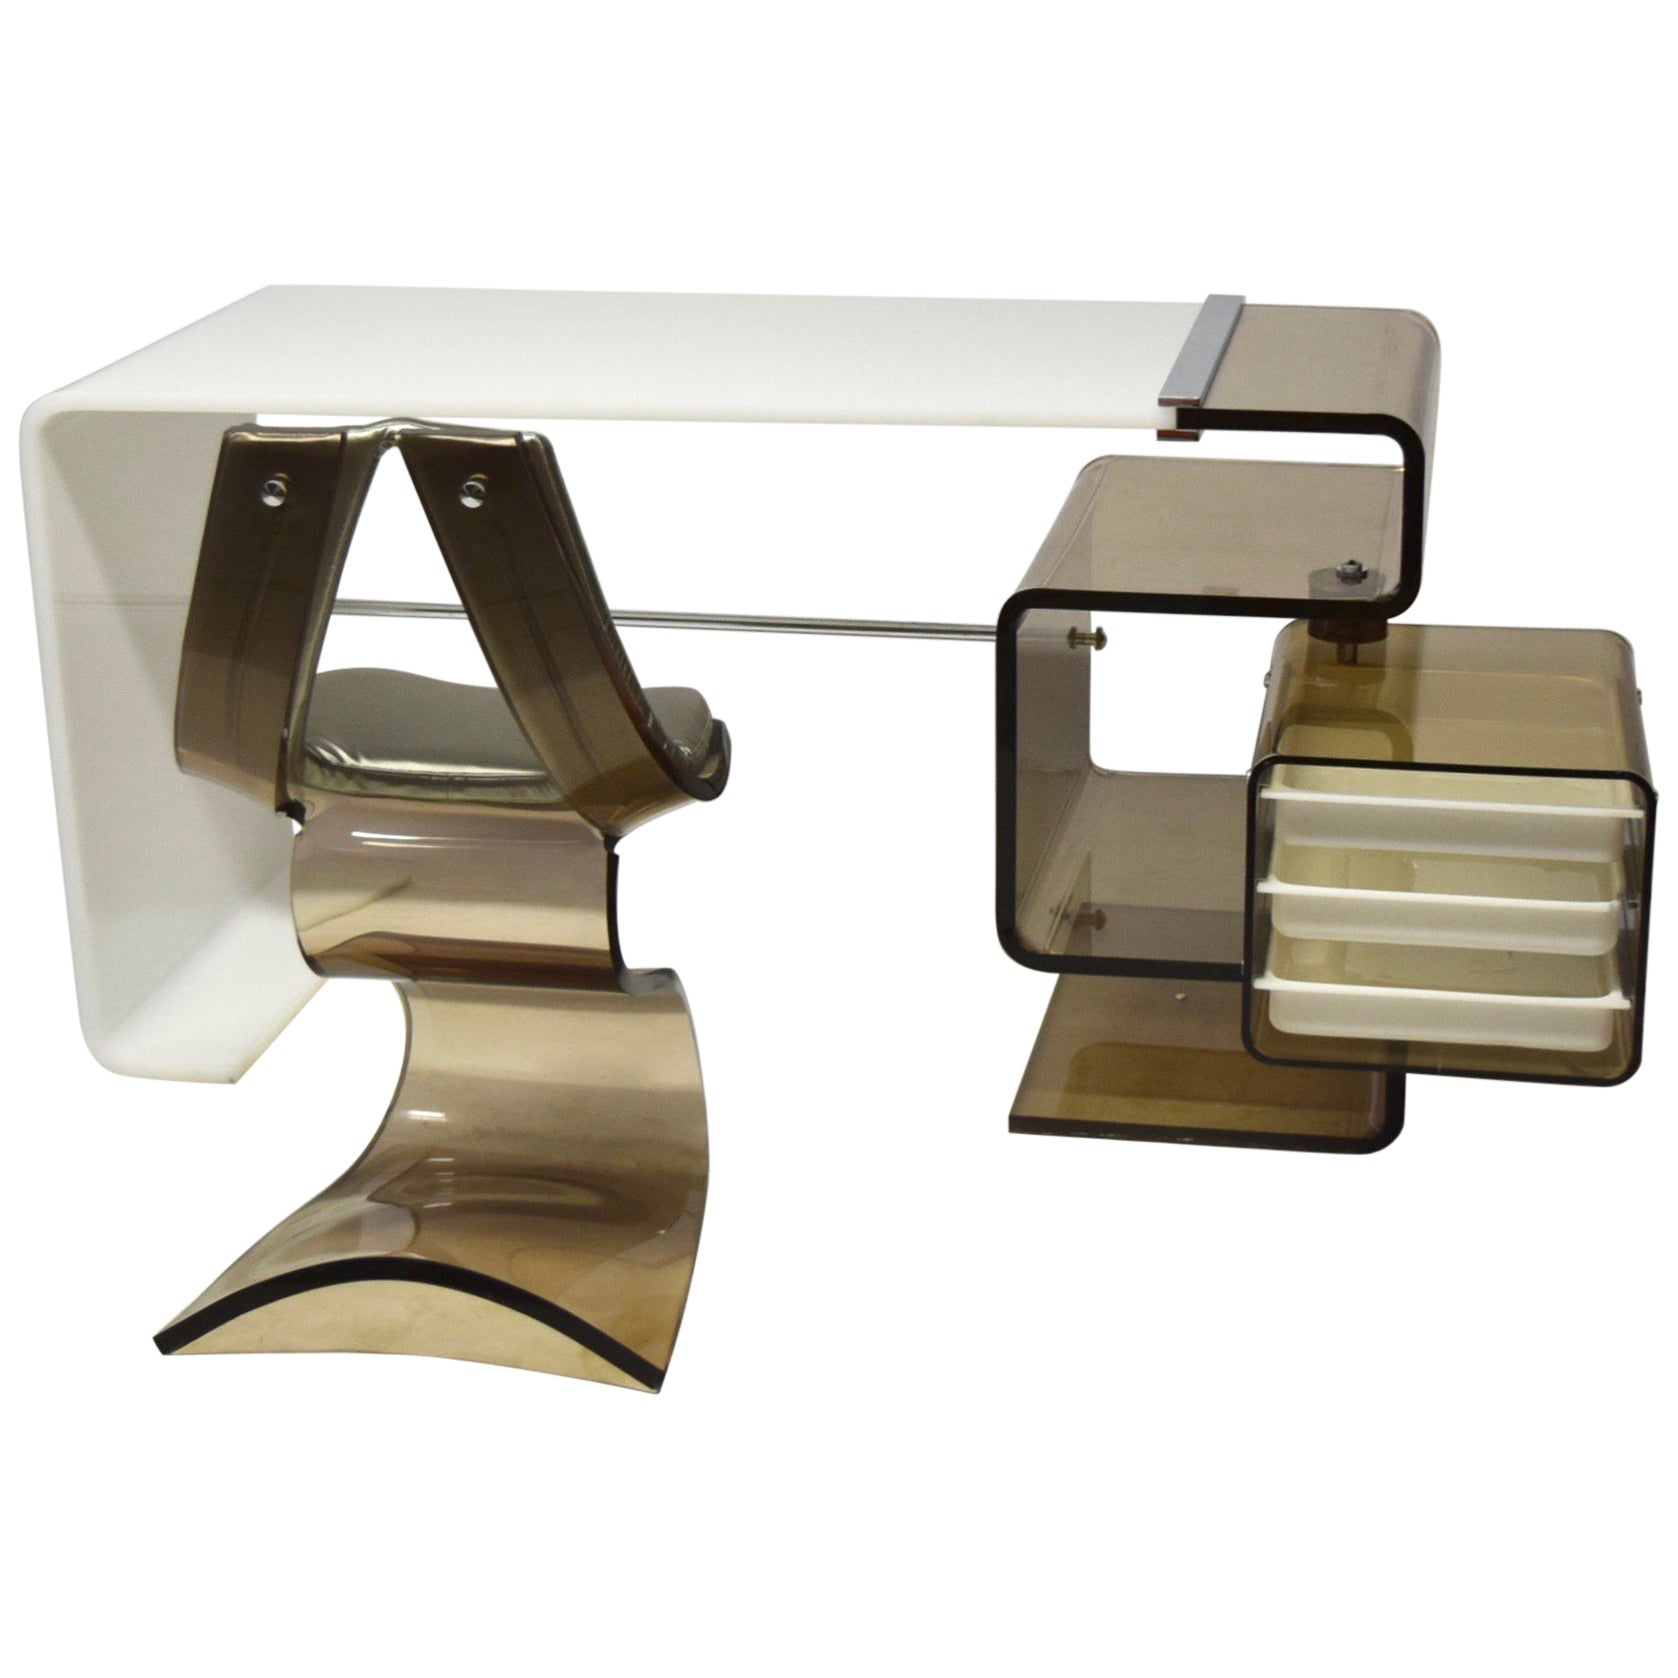 Desk and Chair in Opaque and Smoked Lucite by Rena Dumas made in France 1971